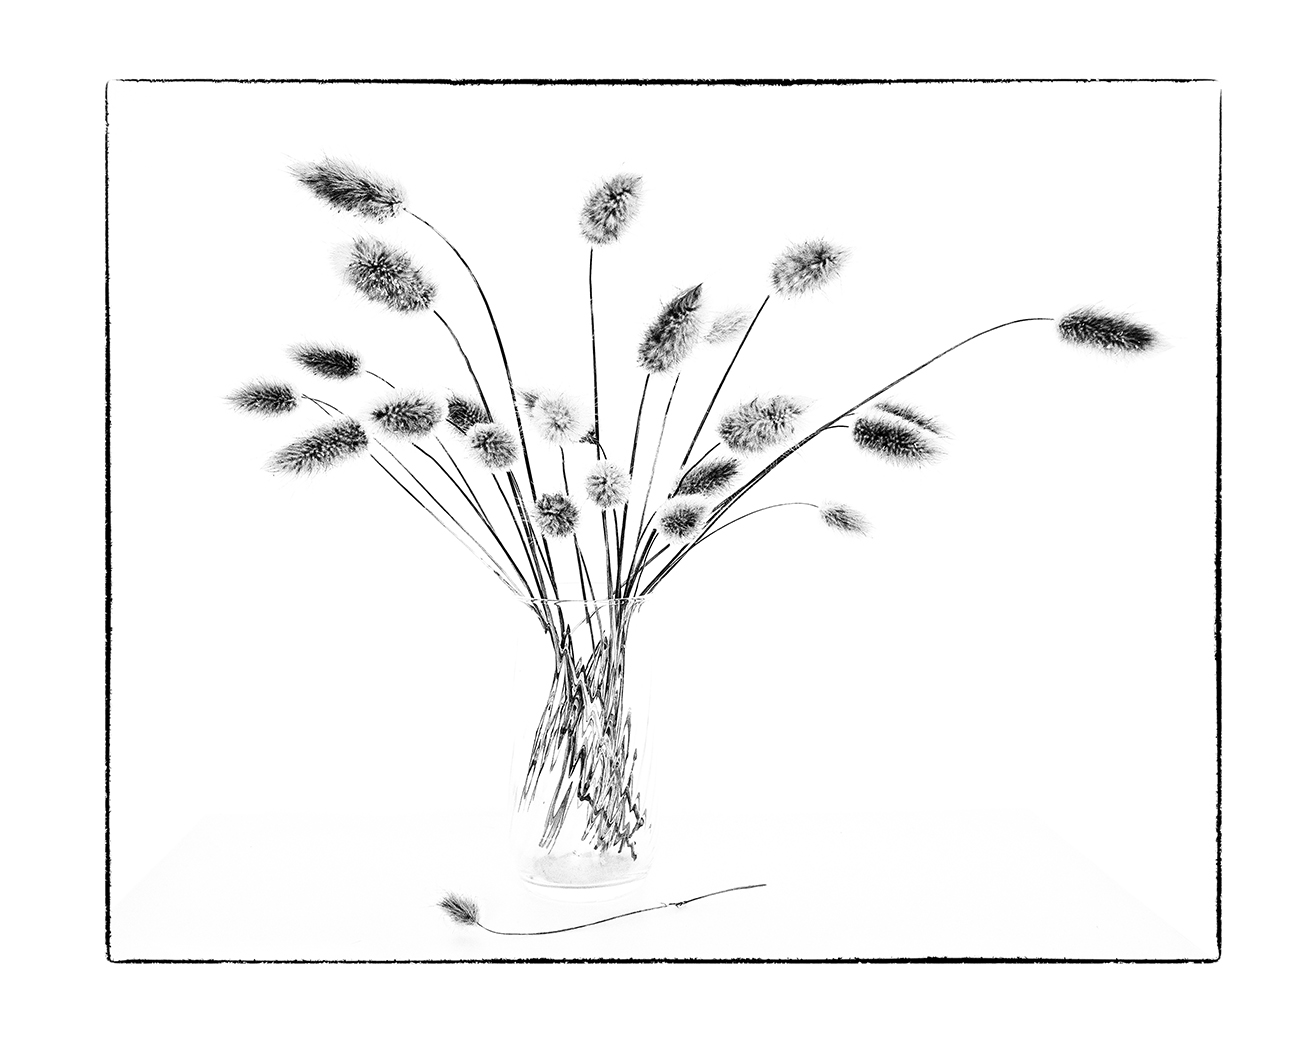 'Grasses' by Sarah Shelley